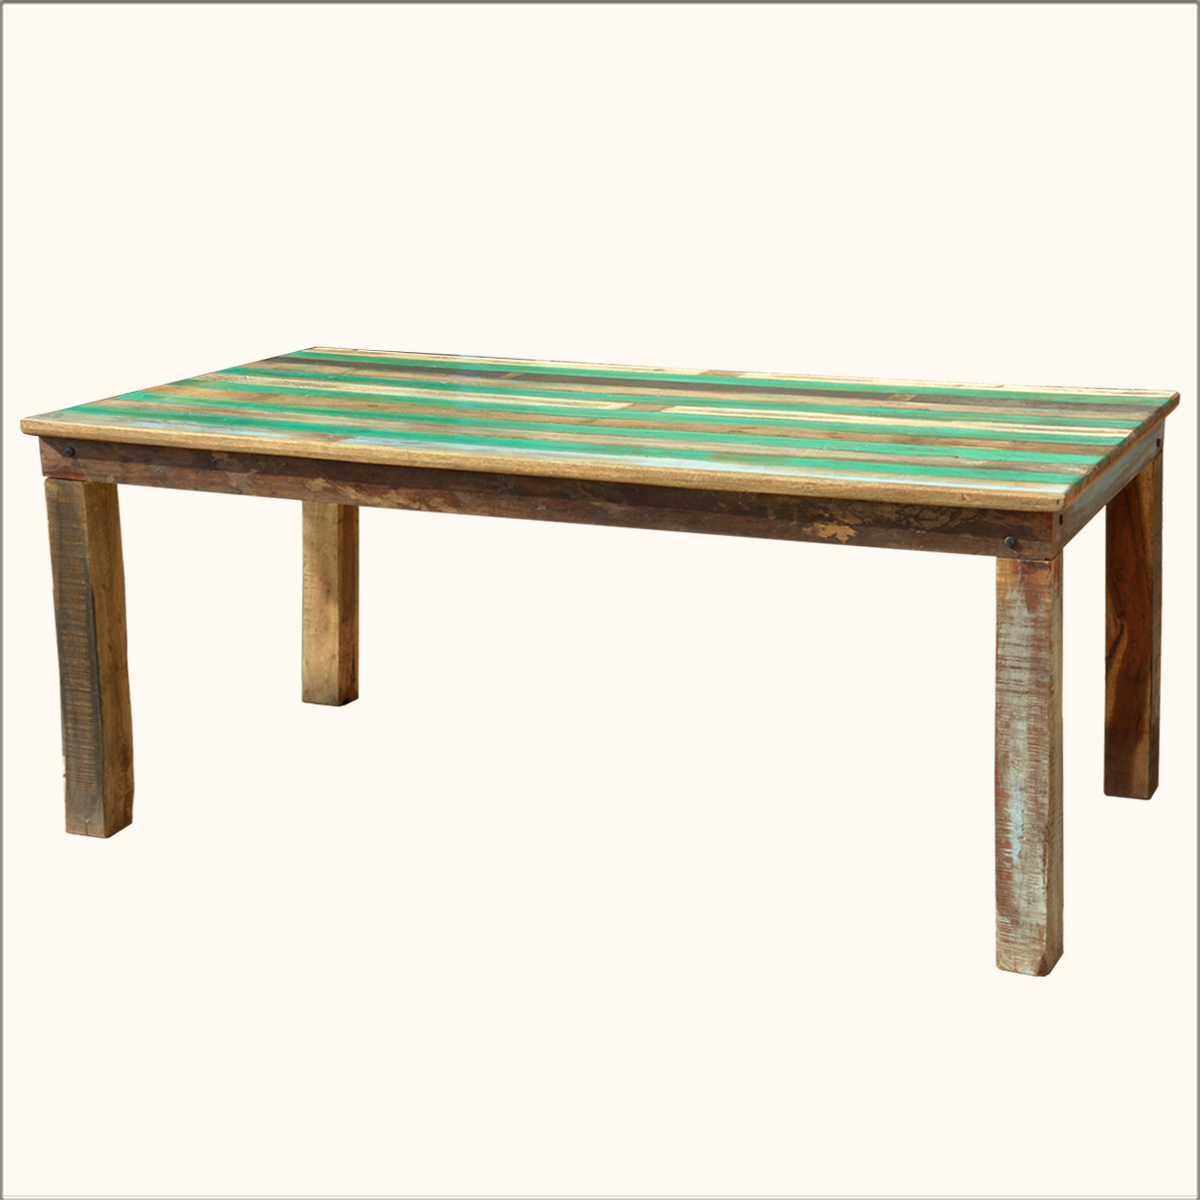 Rustic Solid Reclaimed Wood Distressed Dining Table Furniture For 6 People